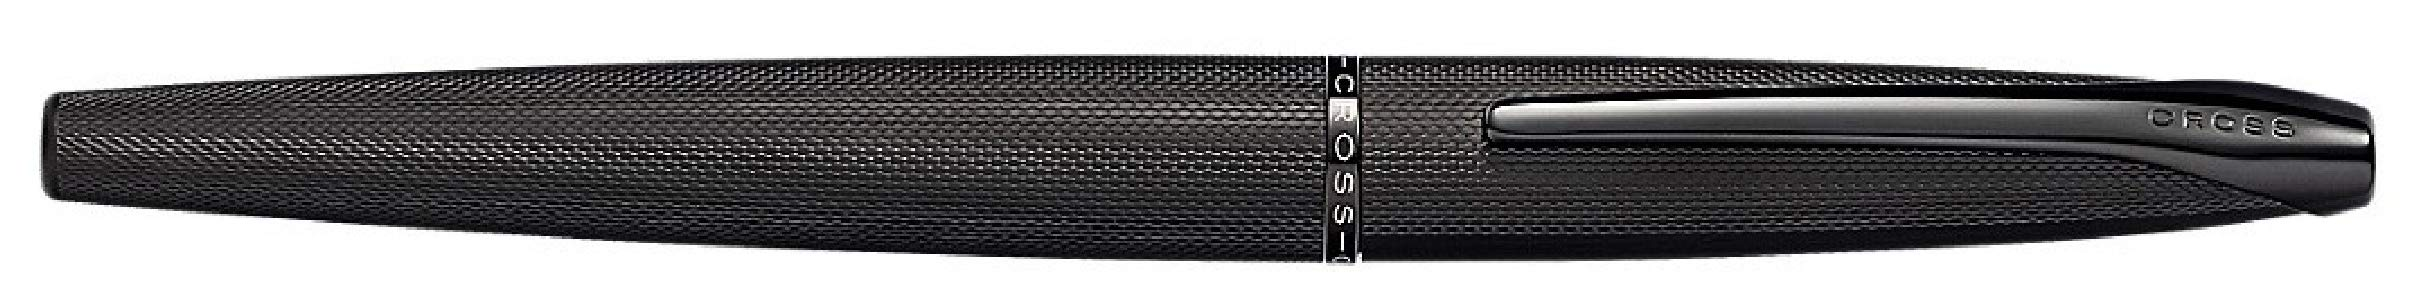 Cross ATX Brushed Black PVD Selectip Rollerball Pen with Etched Diamond Pattern by Cross (Image #5)